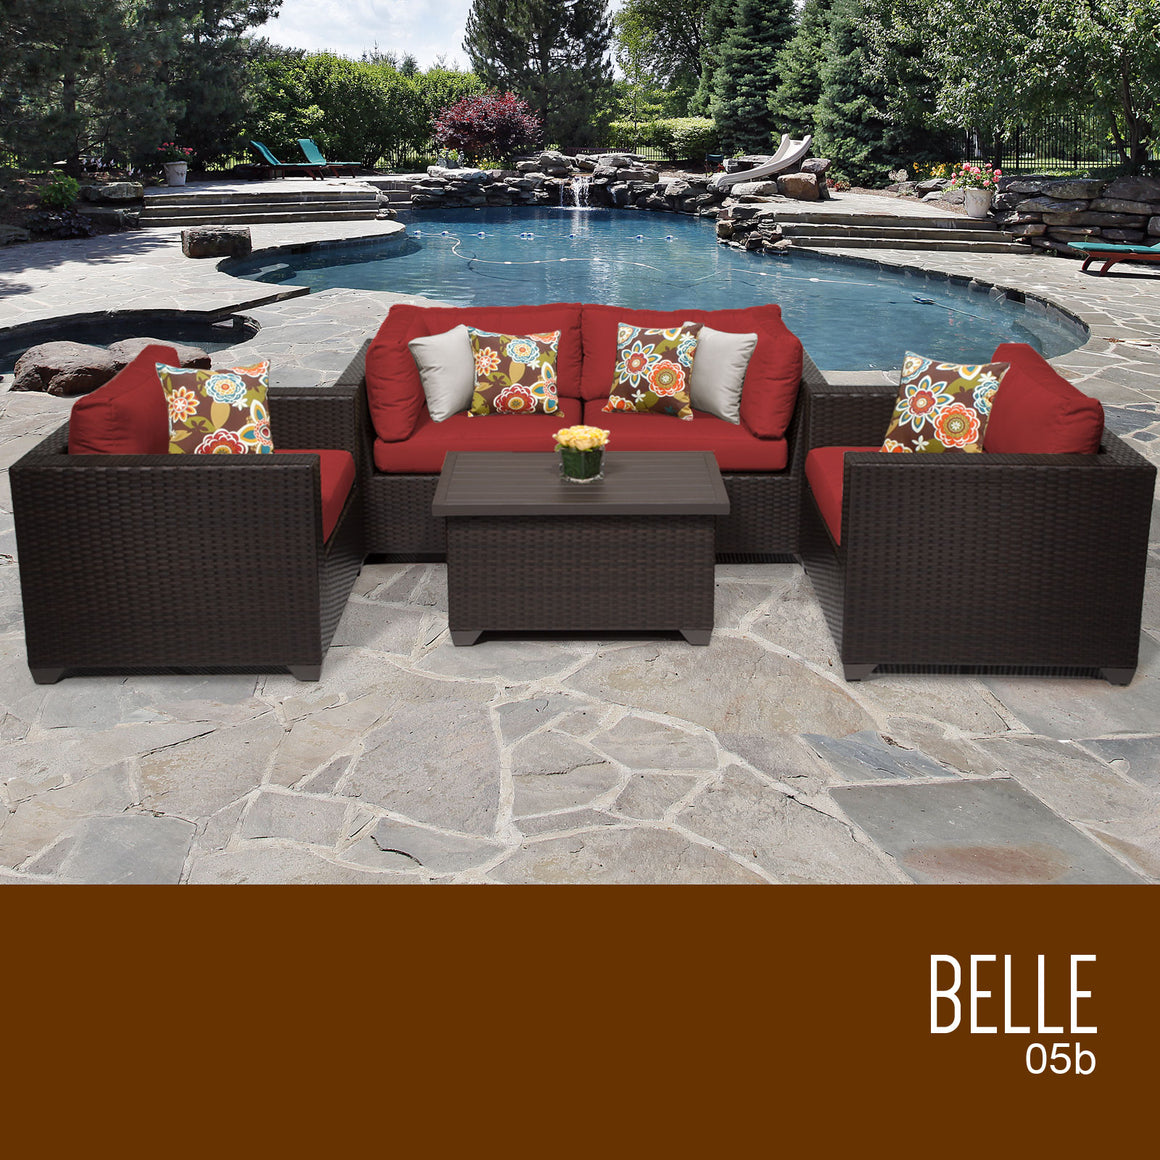 Belle 5 Piece Outdoor Wicker Patio Furniture Set 05b , TK Classics- grayburd